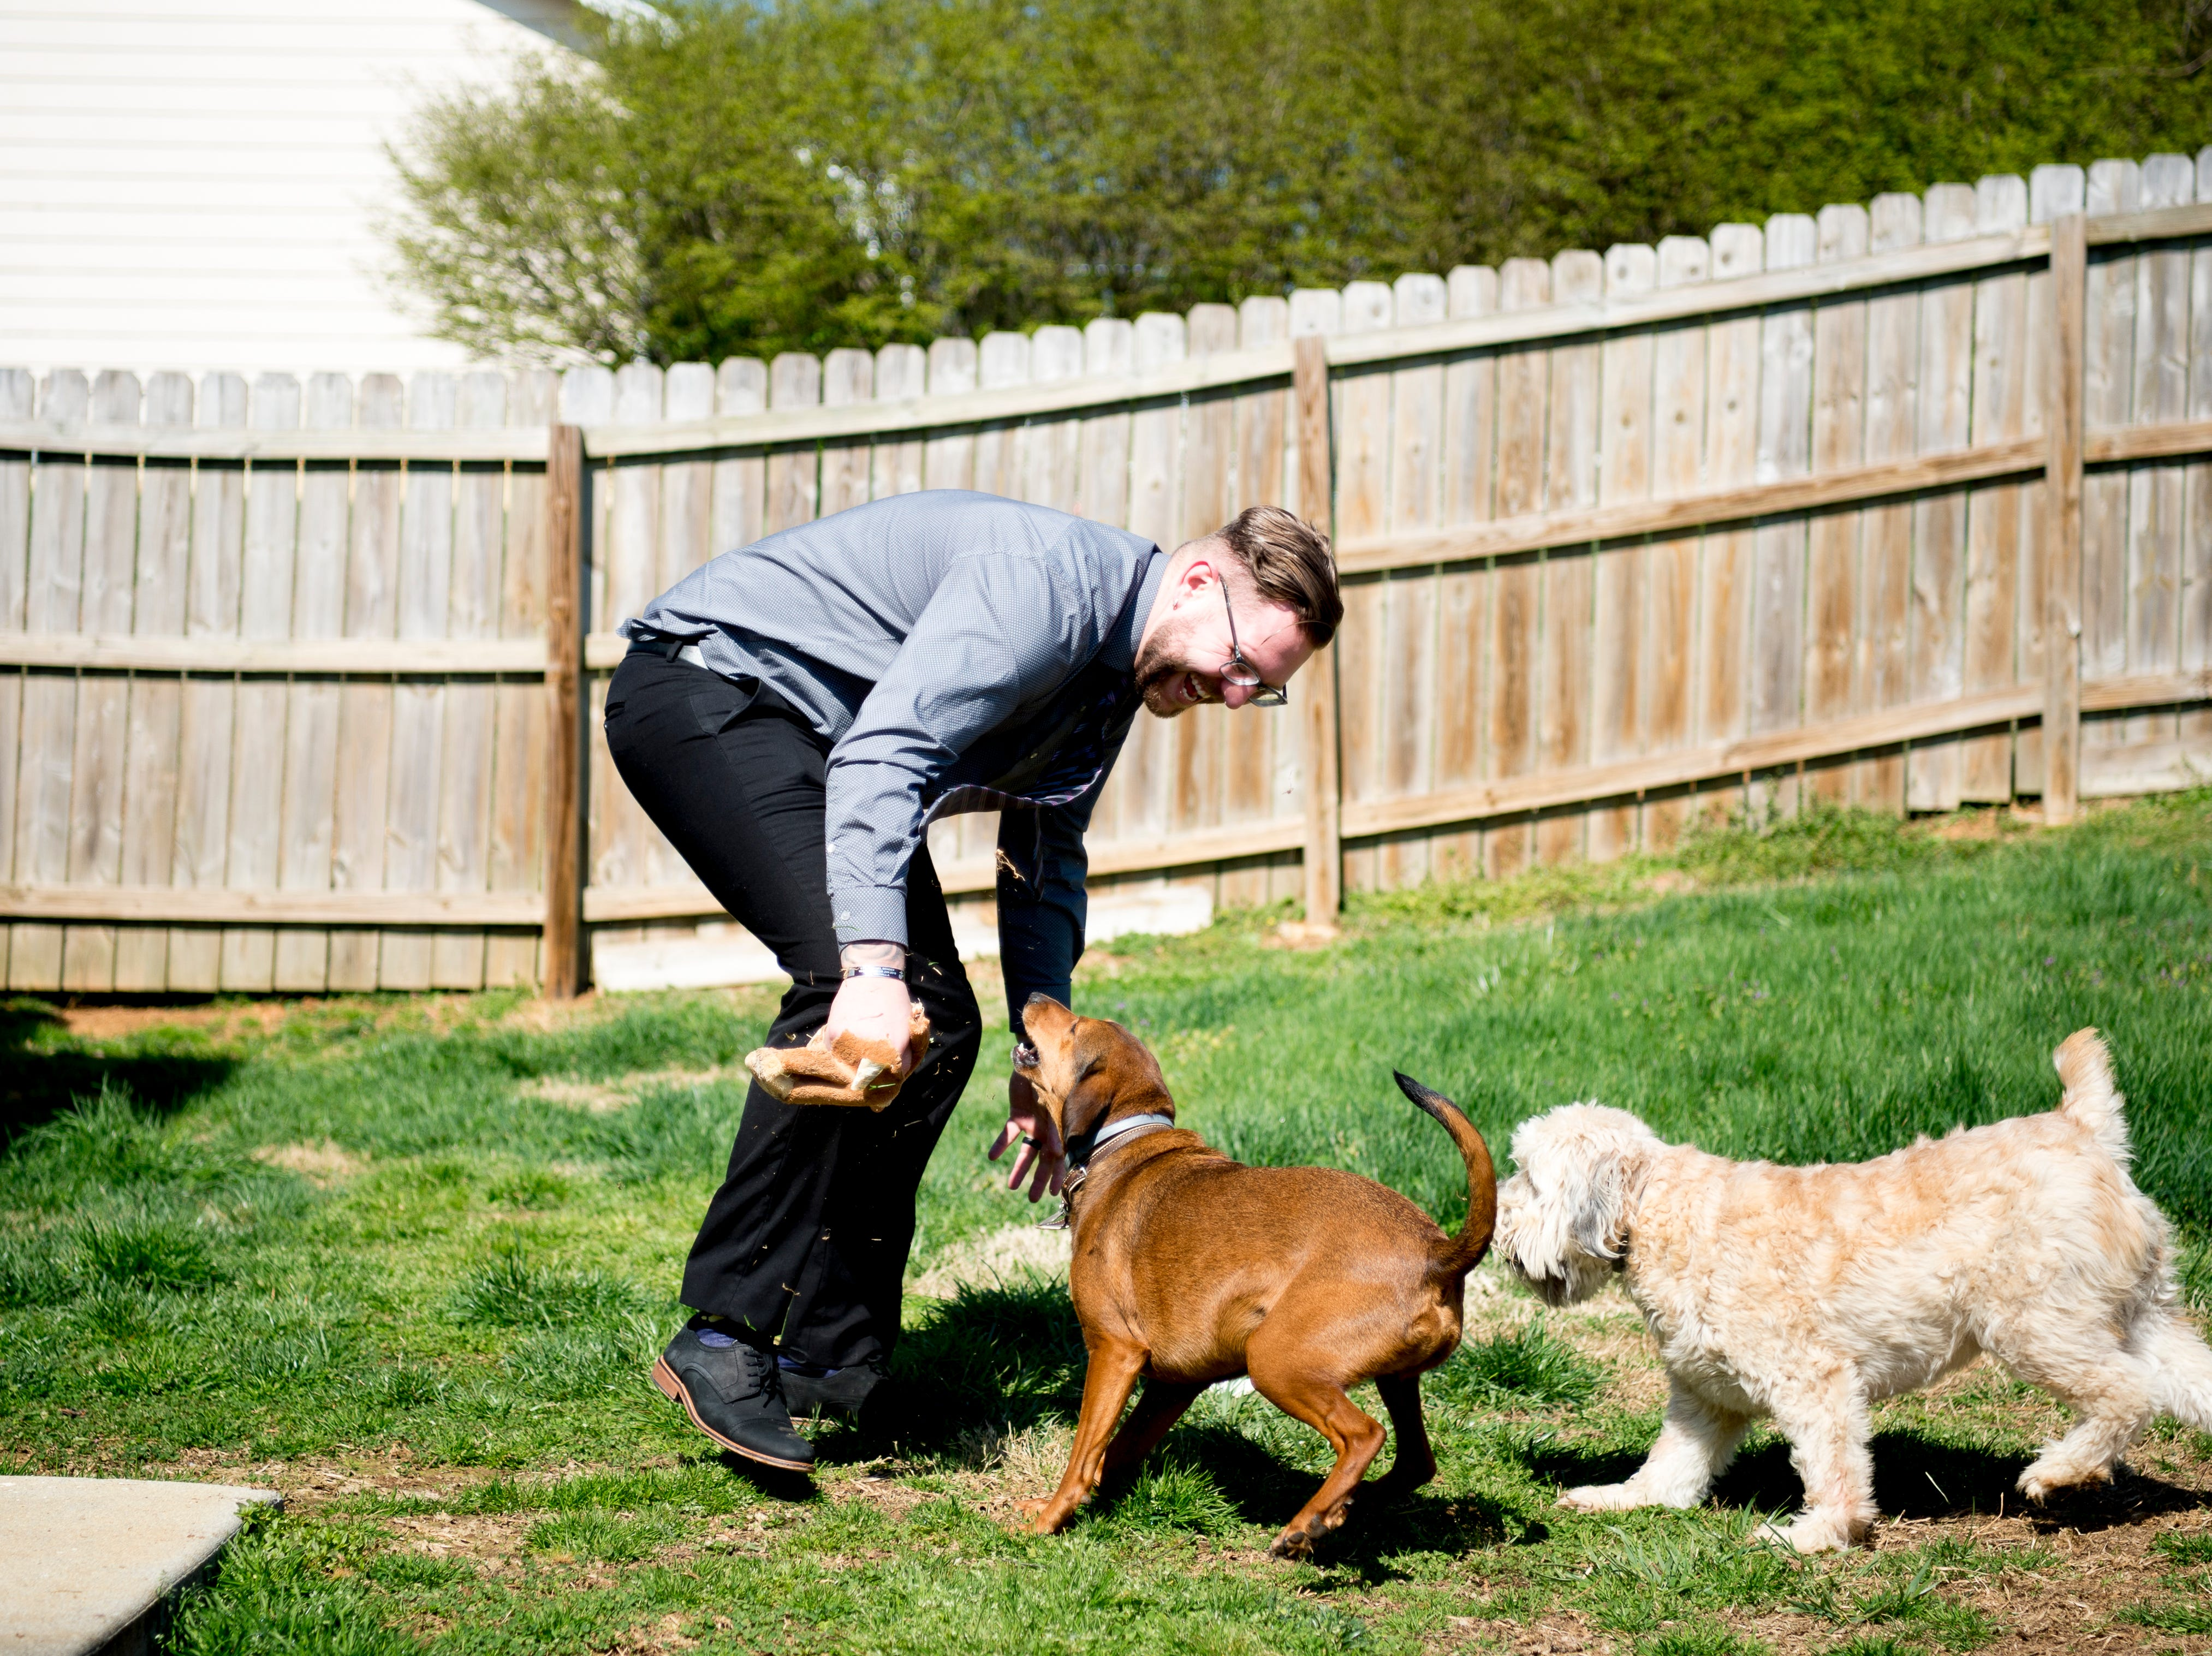 Austin Miller plays with their dogs Nessie, a wheaten terrier, and Dobby, a mountain cur, in the backyard of their home off McKamey Road west of Knoxville, Tennessee on Wednesday, April 3, 2019. After months of house searching, the couple decided to move into their current home last December after making some small compromises like being further away from downtown.